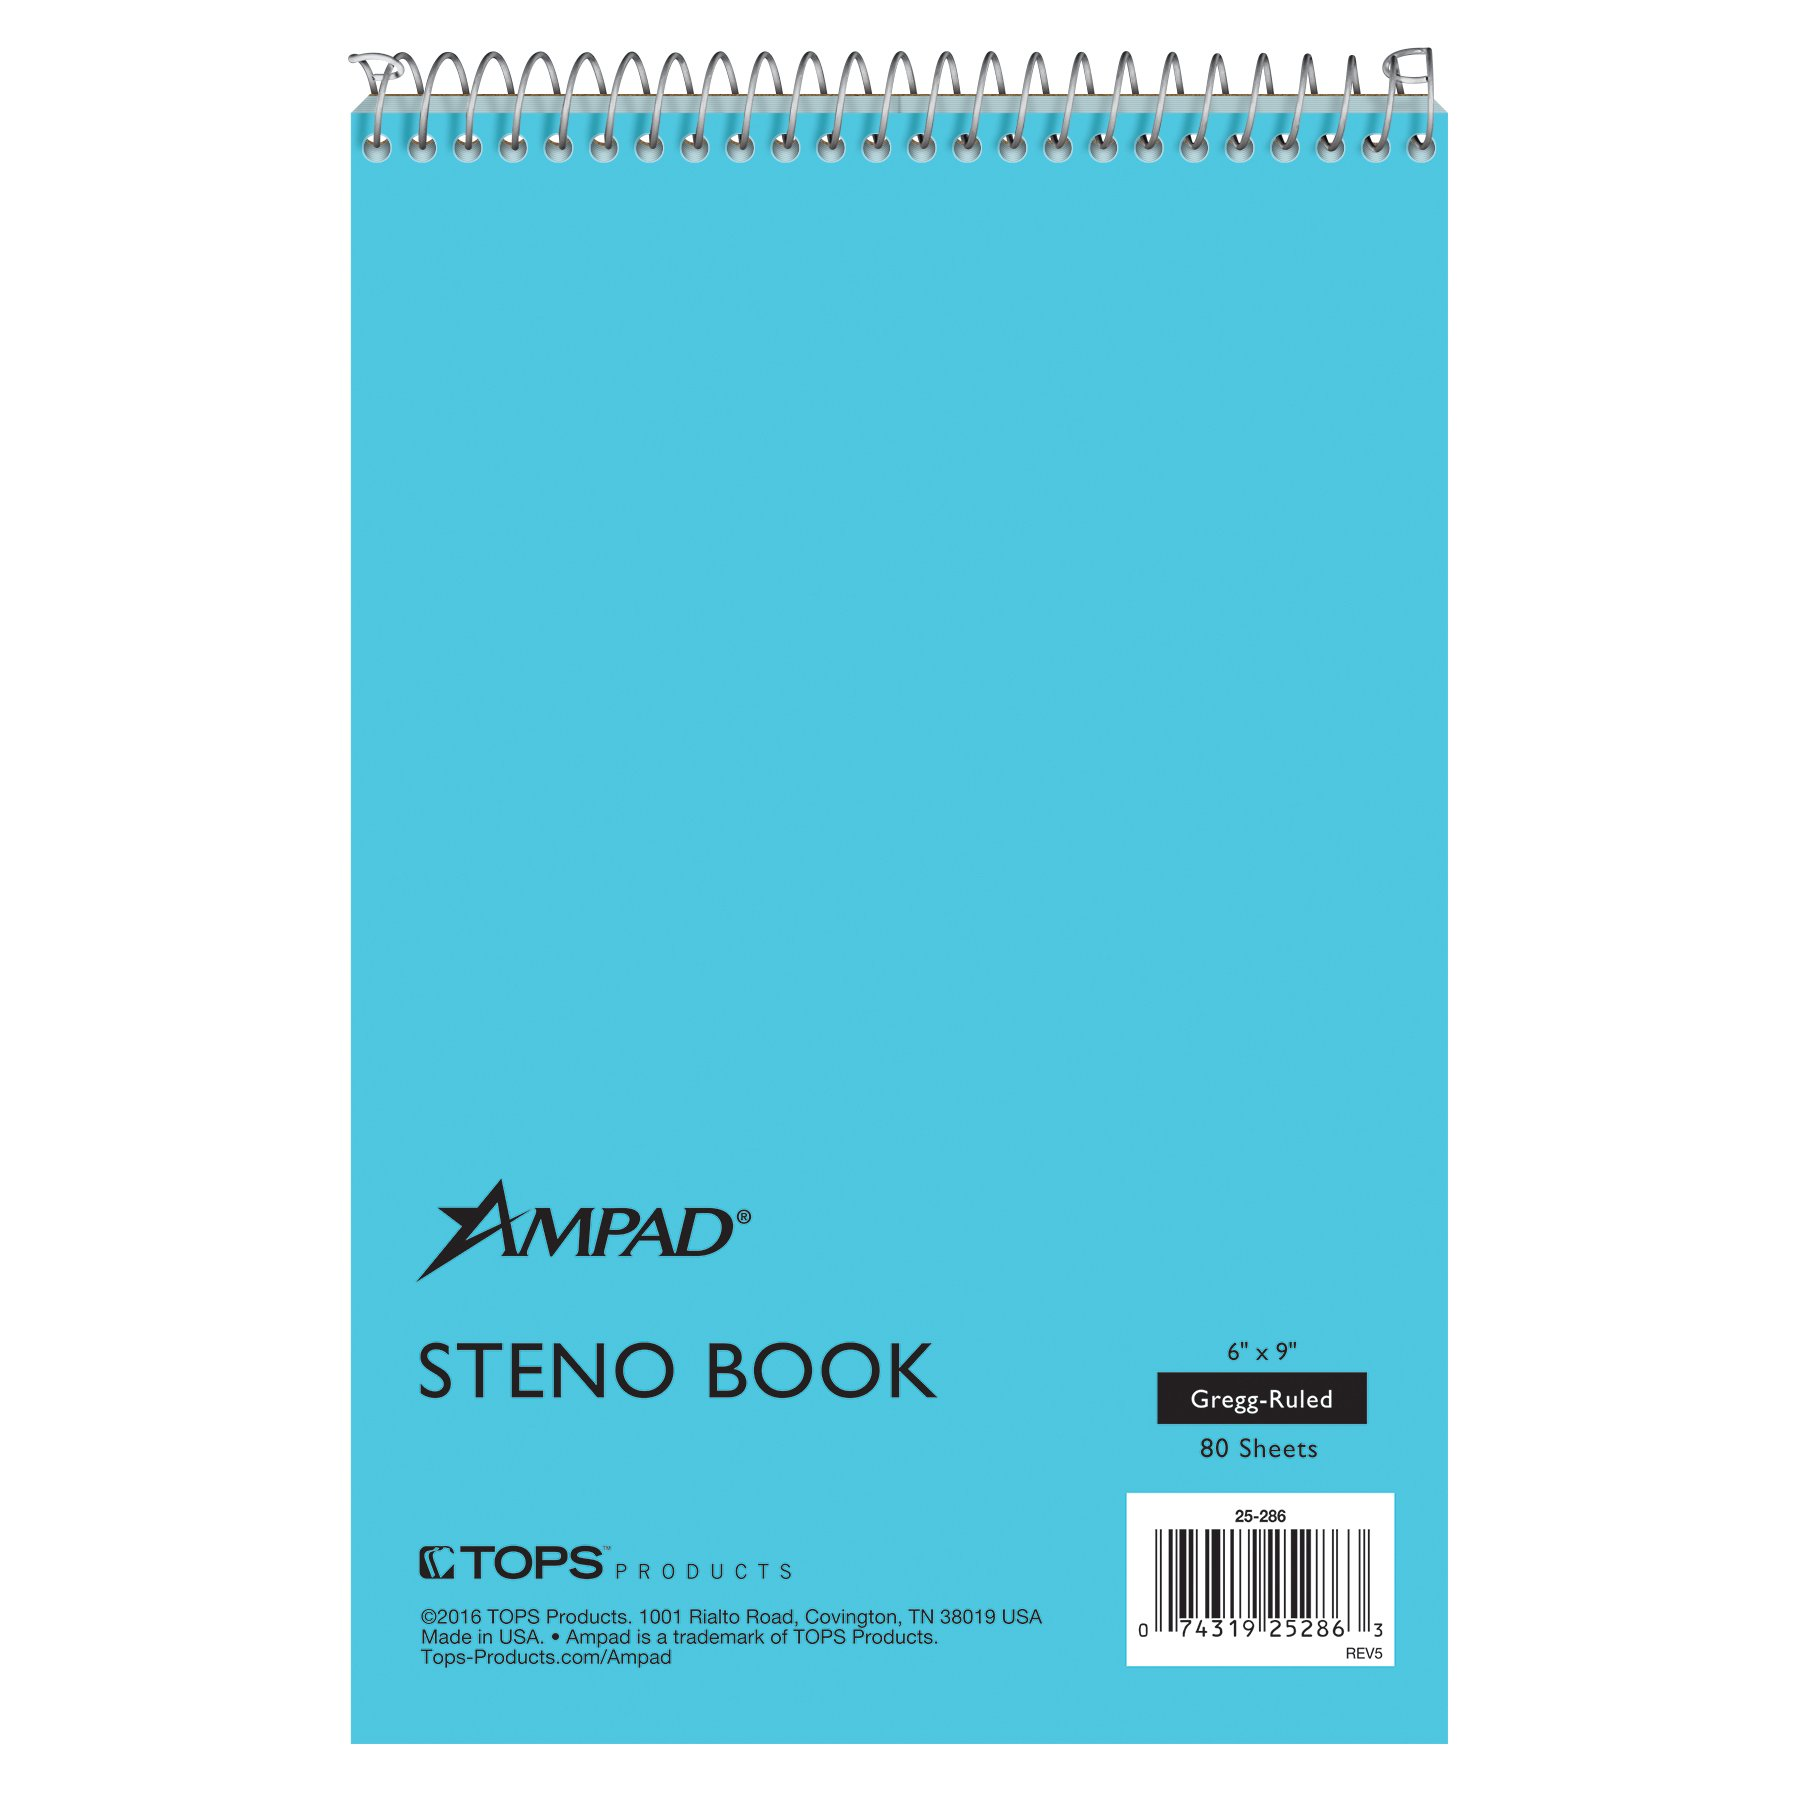 Ampad Steno Book, 6'' x 9'', Gregg Rule, Blue Paper and Cover, 80 Sheets, 12 Pack (25-286)